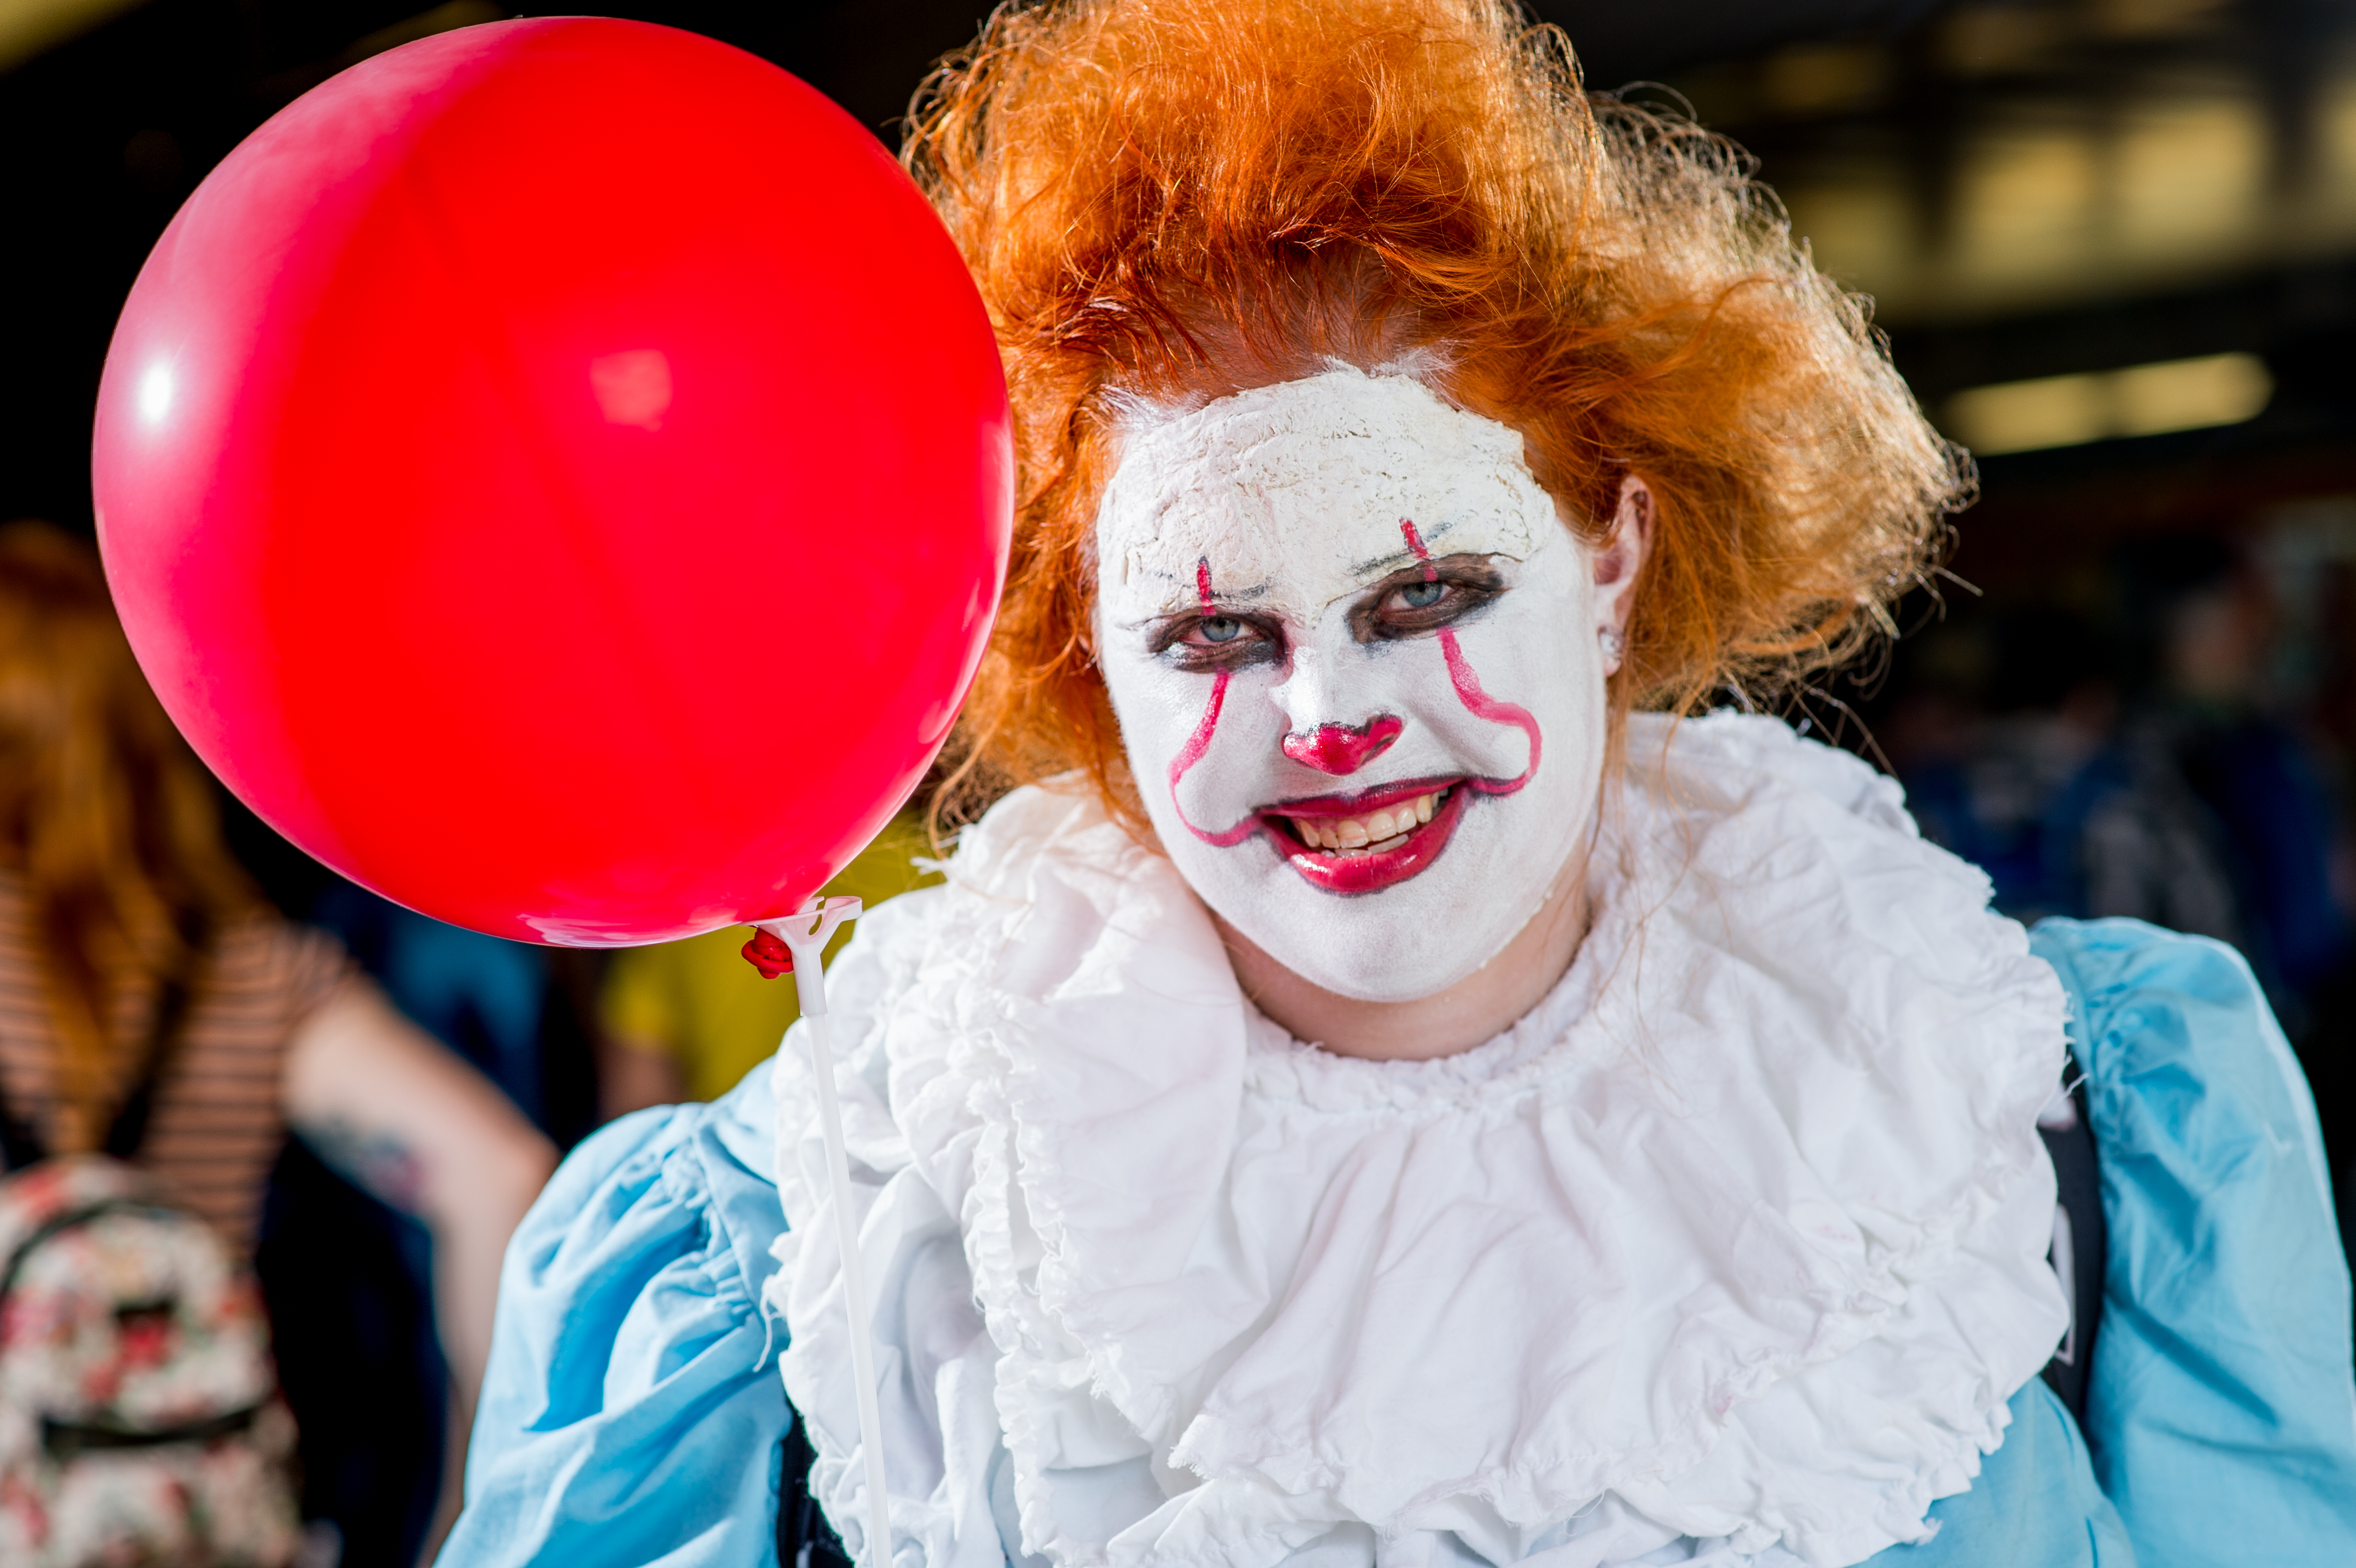 NEW YORK, NY - OCTOBER 06:  A fan cosplays as Pennywise the Dancing Clown from the movie IT during 2017 New York Comic Con - Day 2 on October 6, 2017 in New York City.  (Photo by Roy Rochlin/WireImage,)